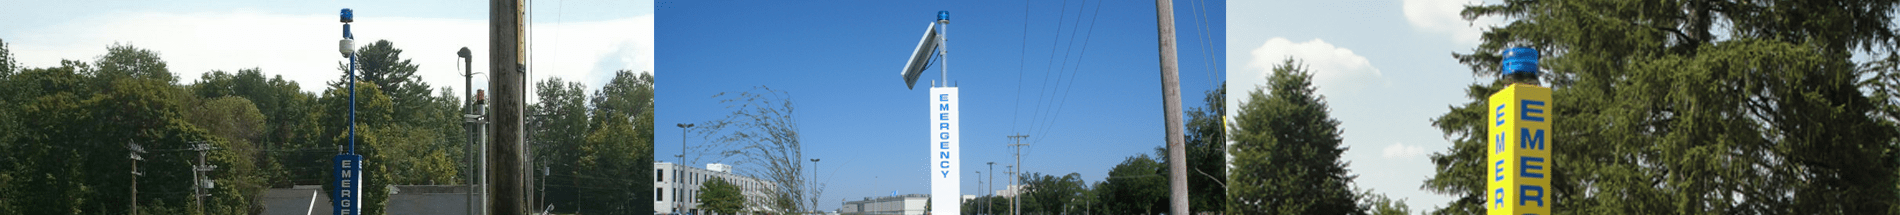 Blue Light Towers, Pedestals & Call Stations